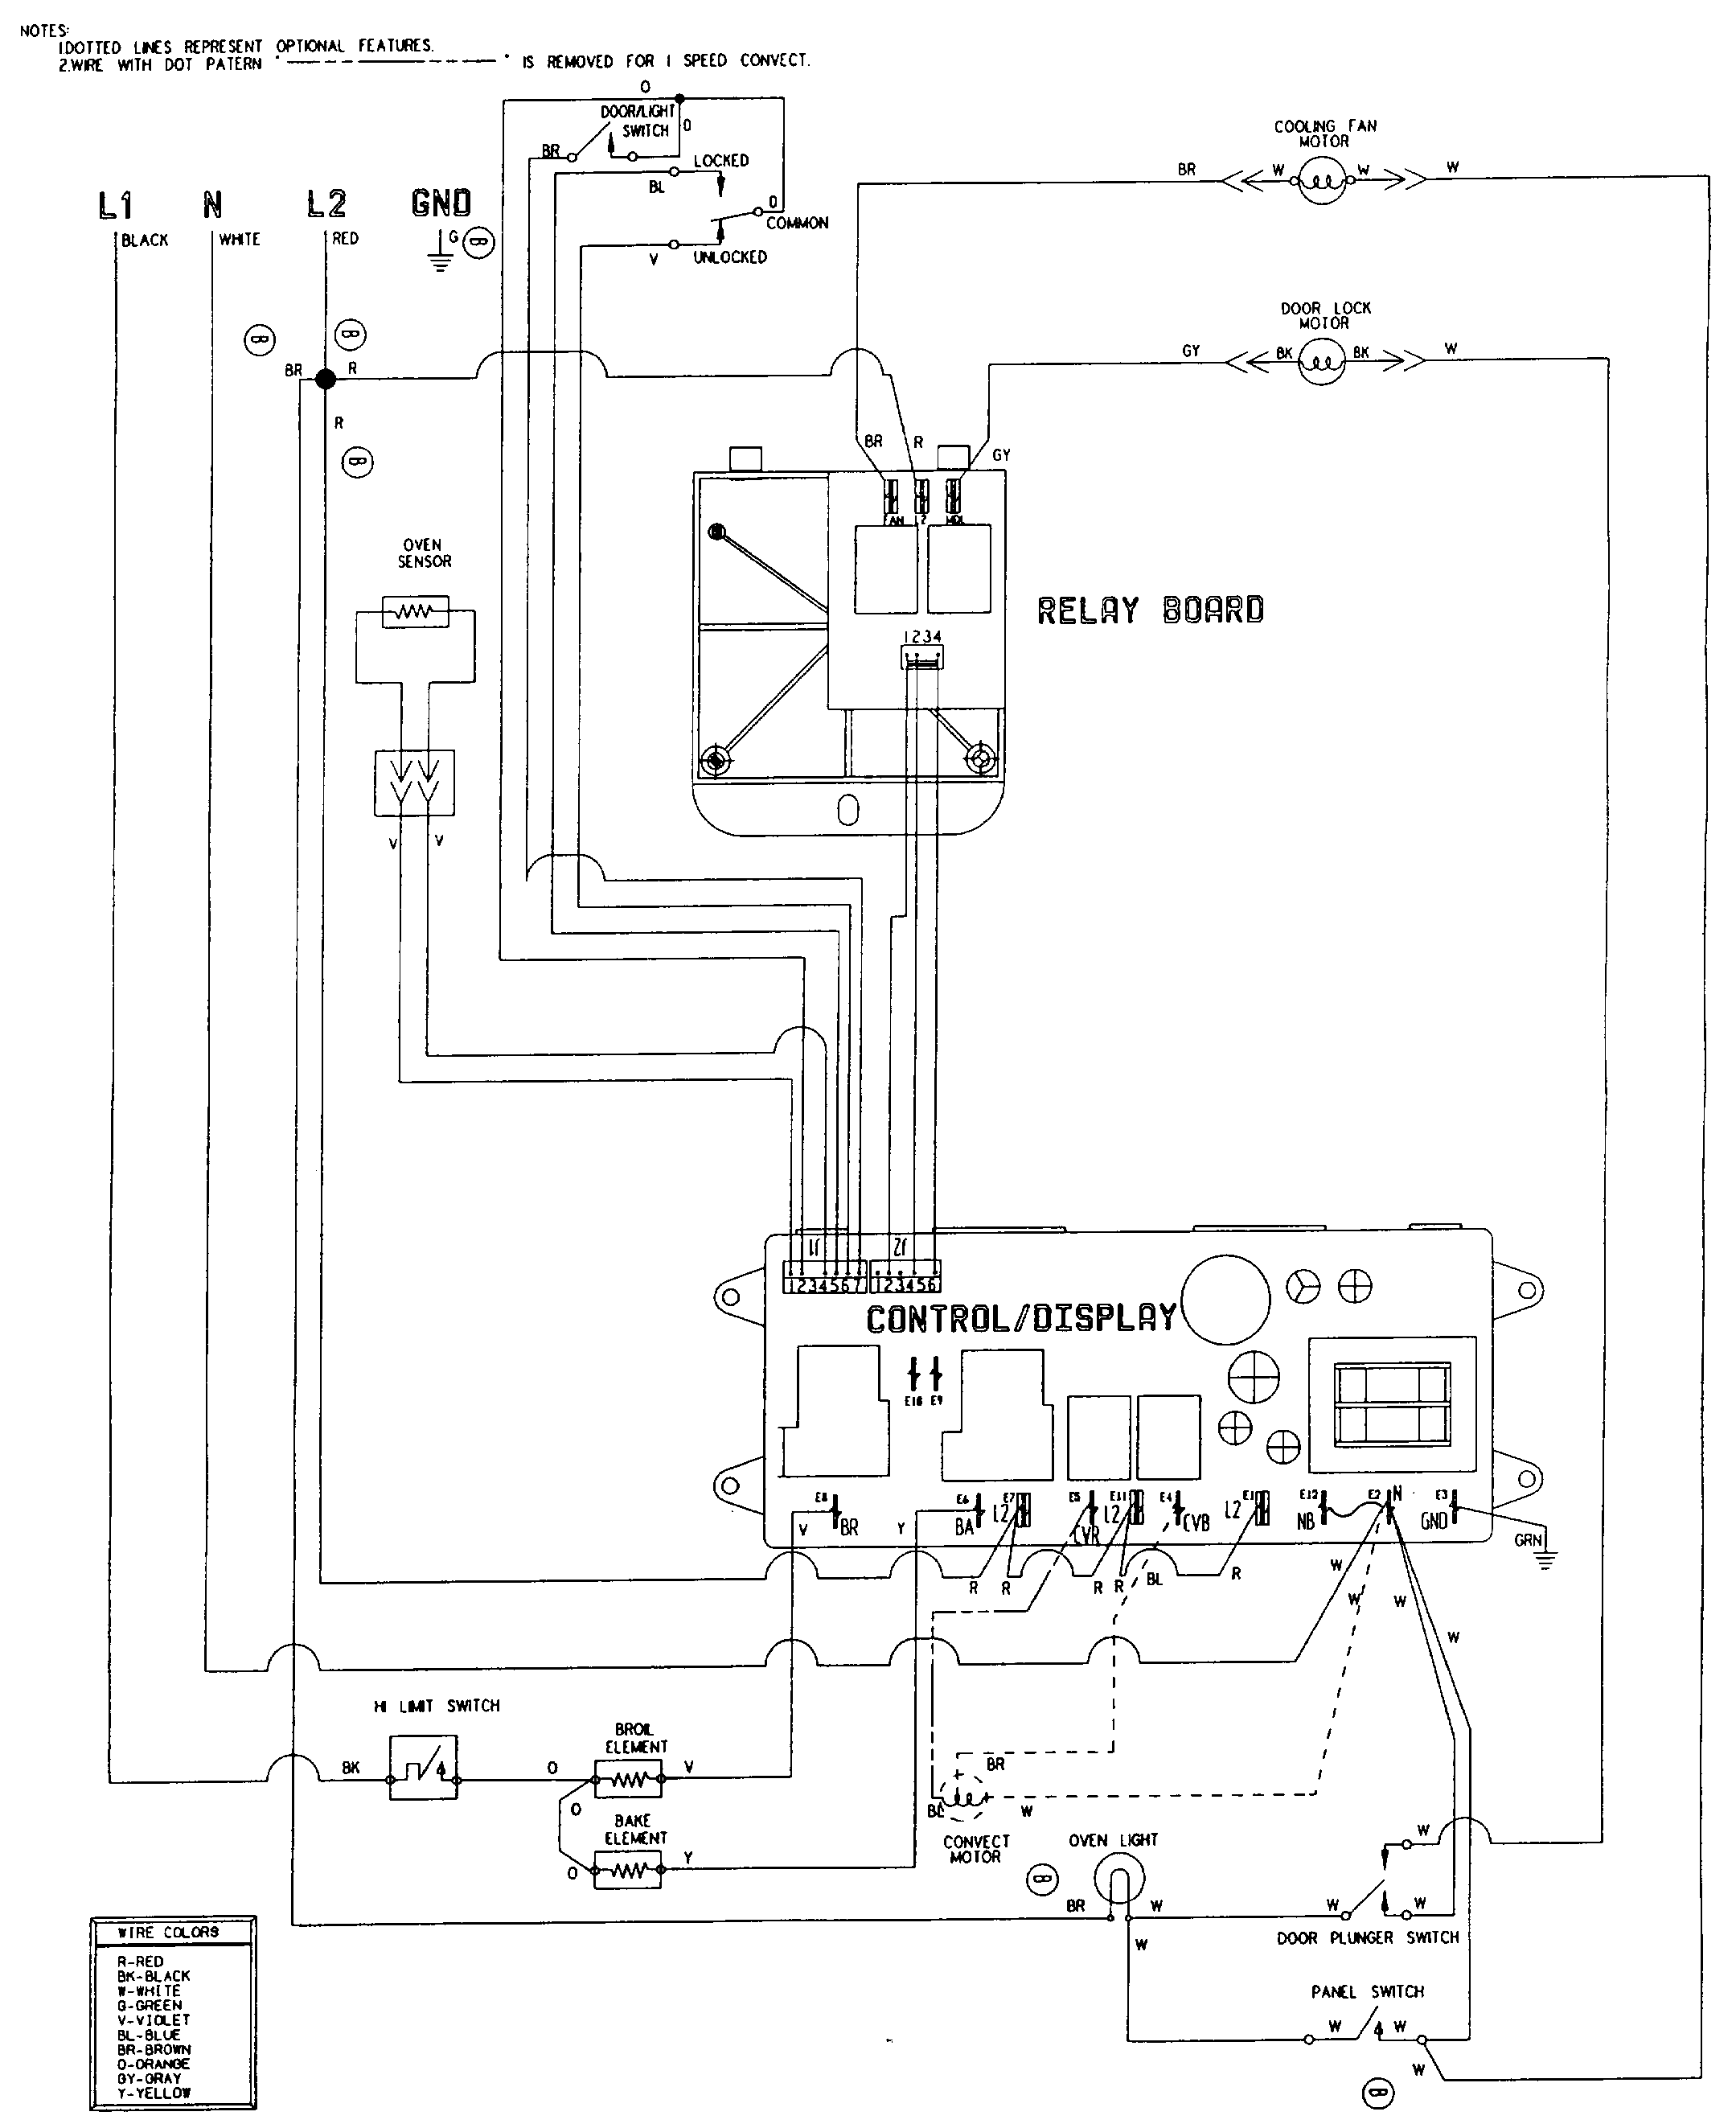 Electric Oven Schematic Wiring Library Diagram For Bosch Hob Additionally Copper To Aluminum Baking